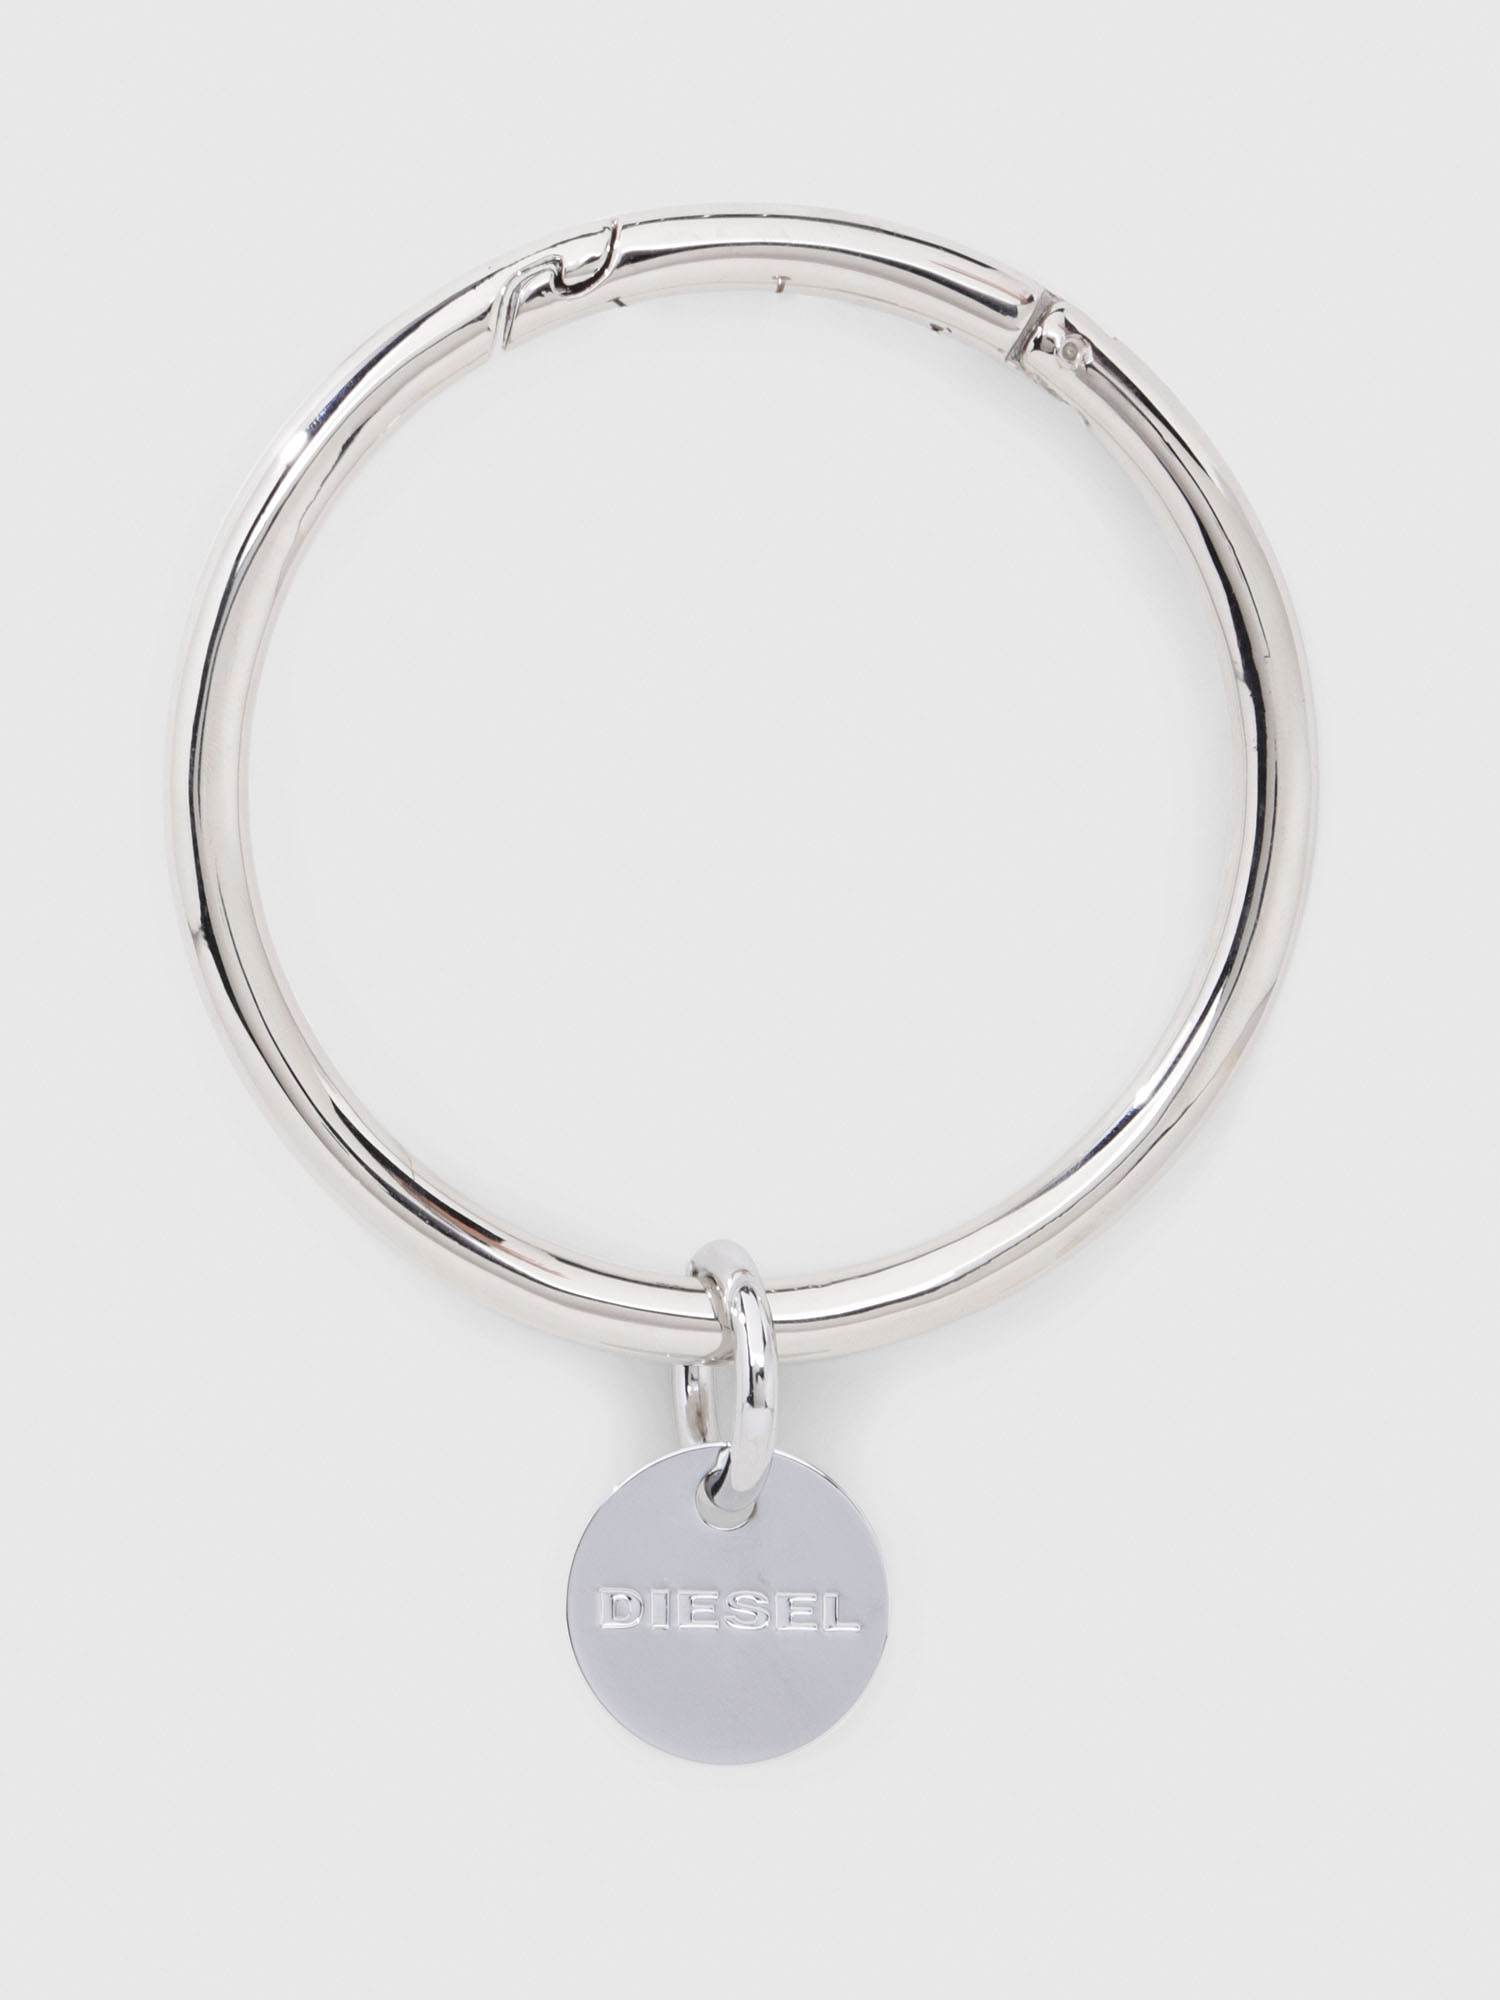 Diesel - CL-METAL BANGLE,  - Bijoux and Gadgets - Image 1